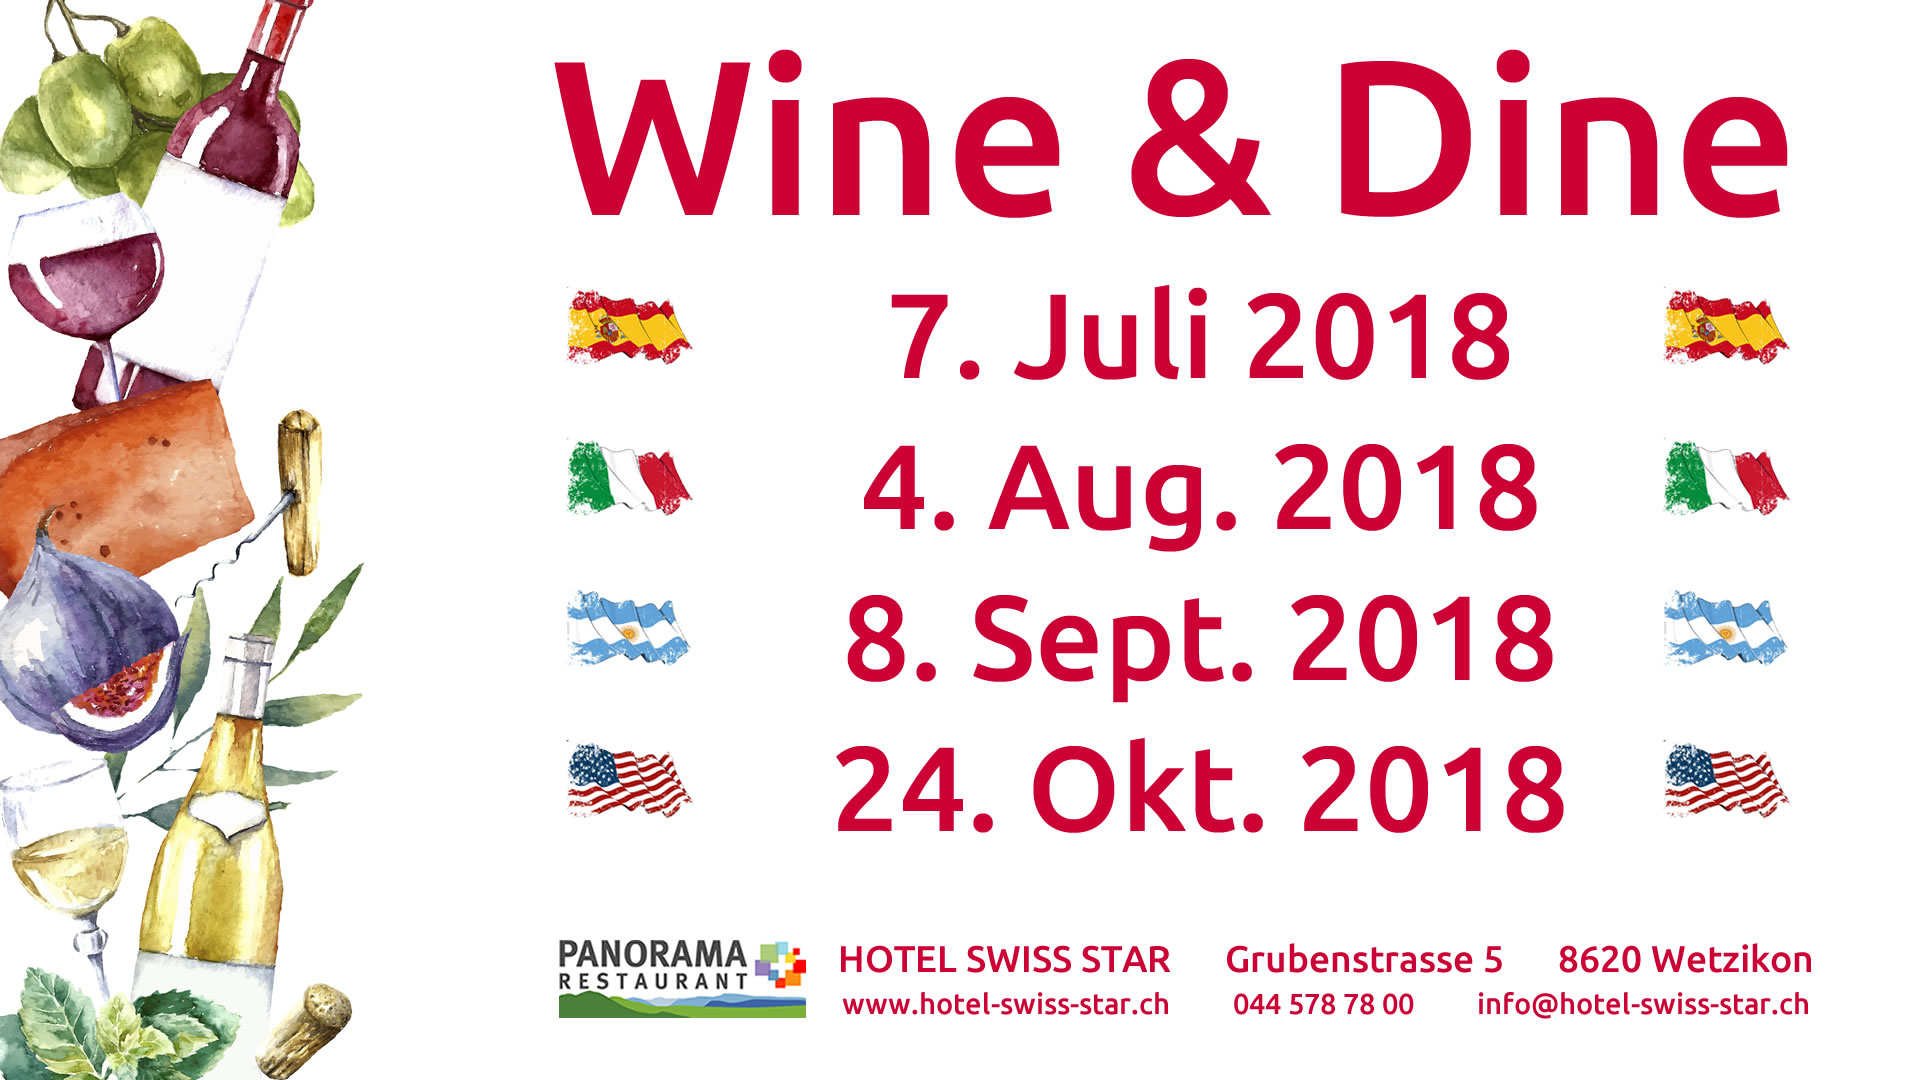 <a href=&quot;http://www.hotel-swiss-star.ch&quot; target=&quot;_blank&quot;>Wine &amp; Dine im Panorama Restaurant</a>